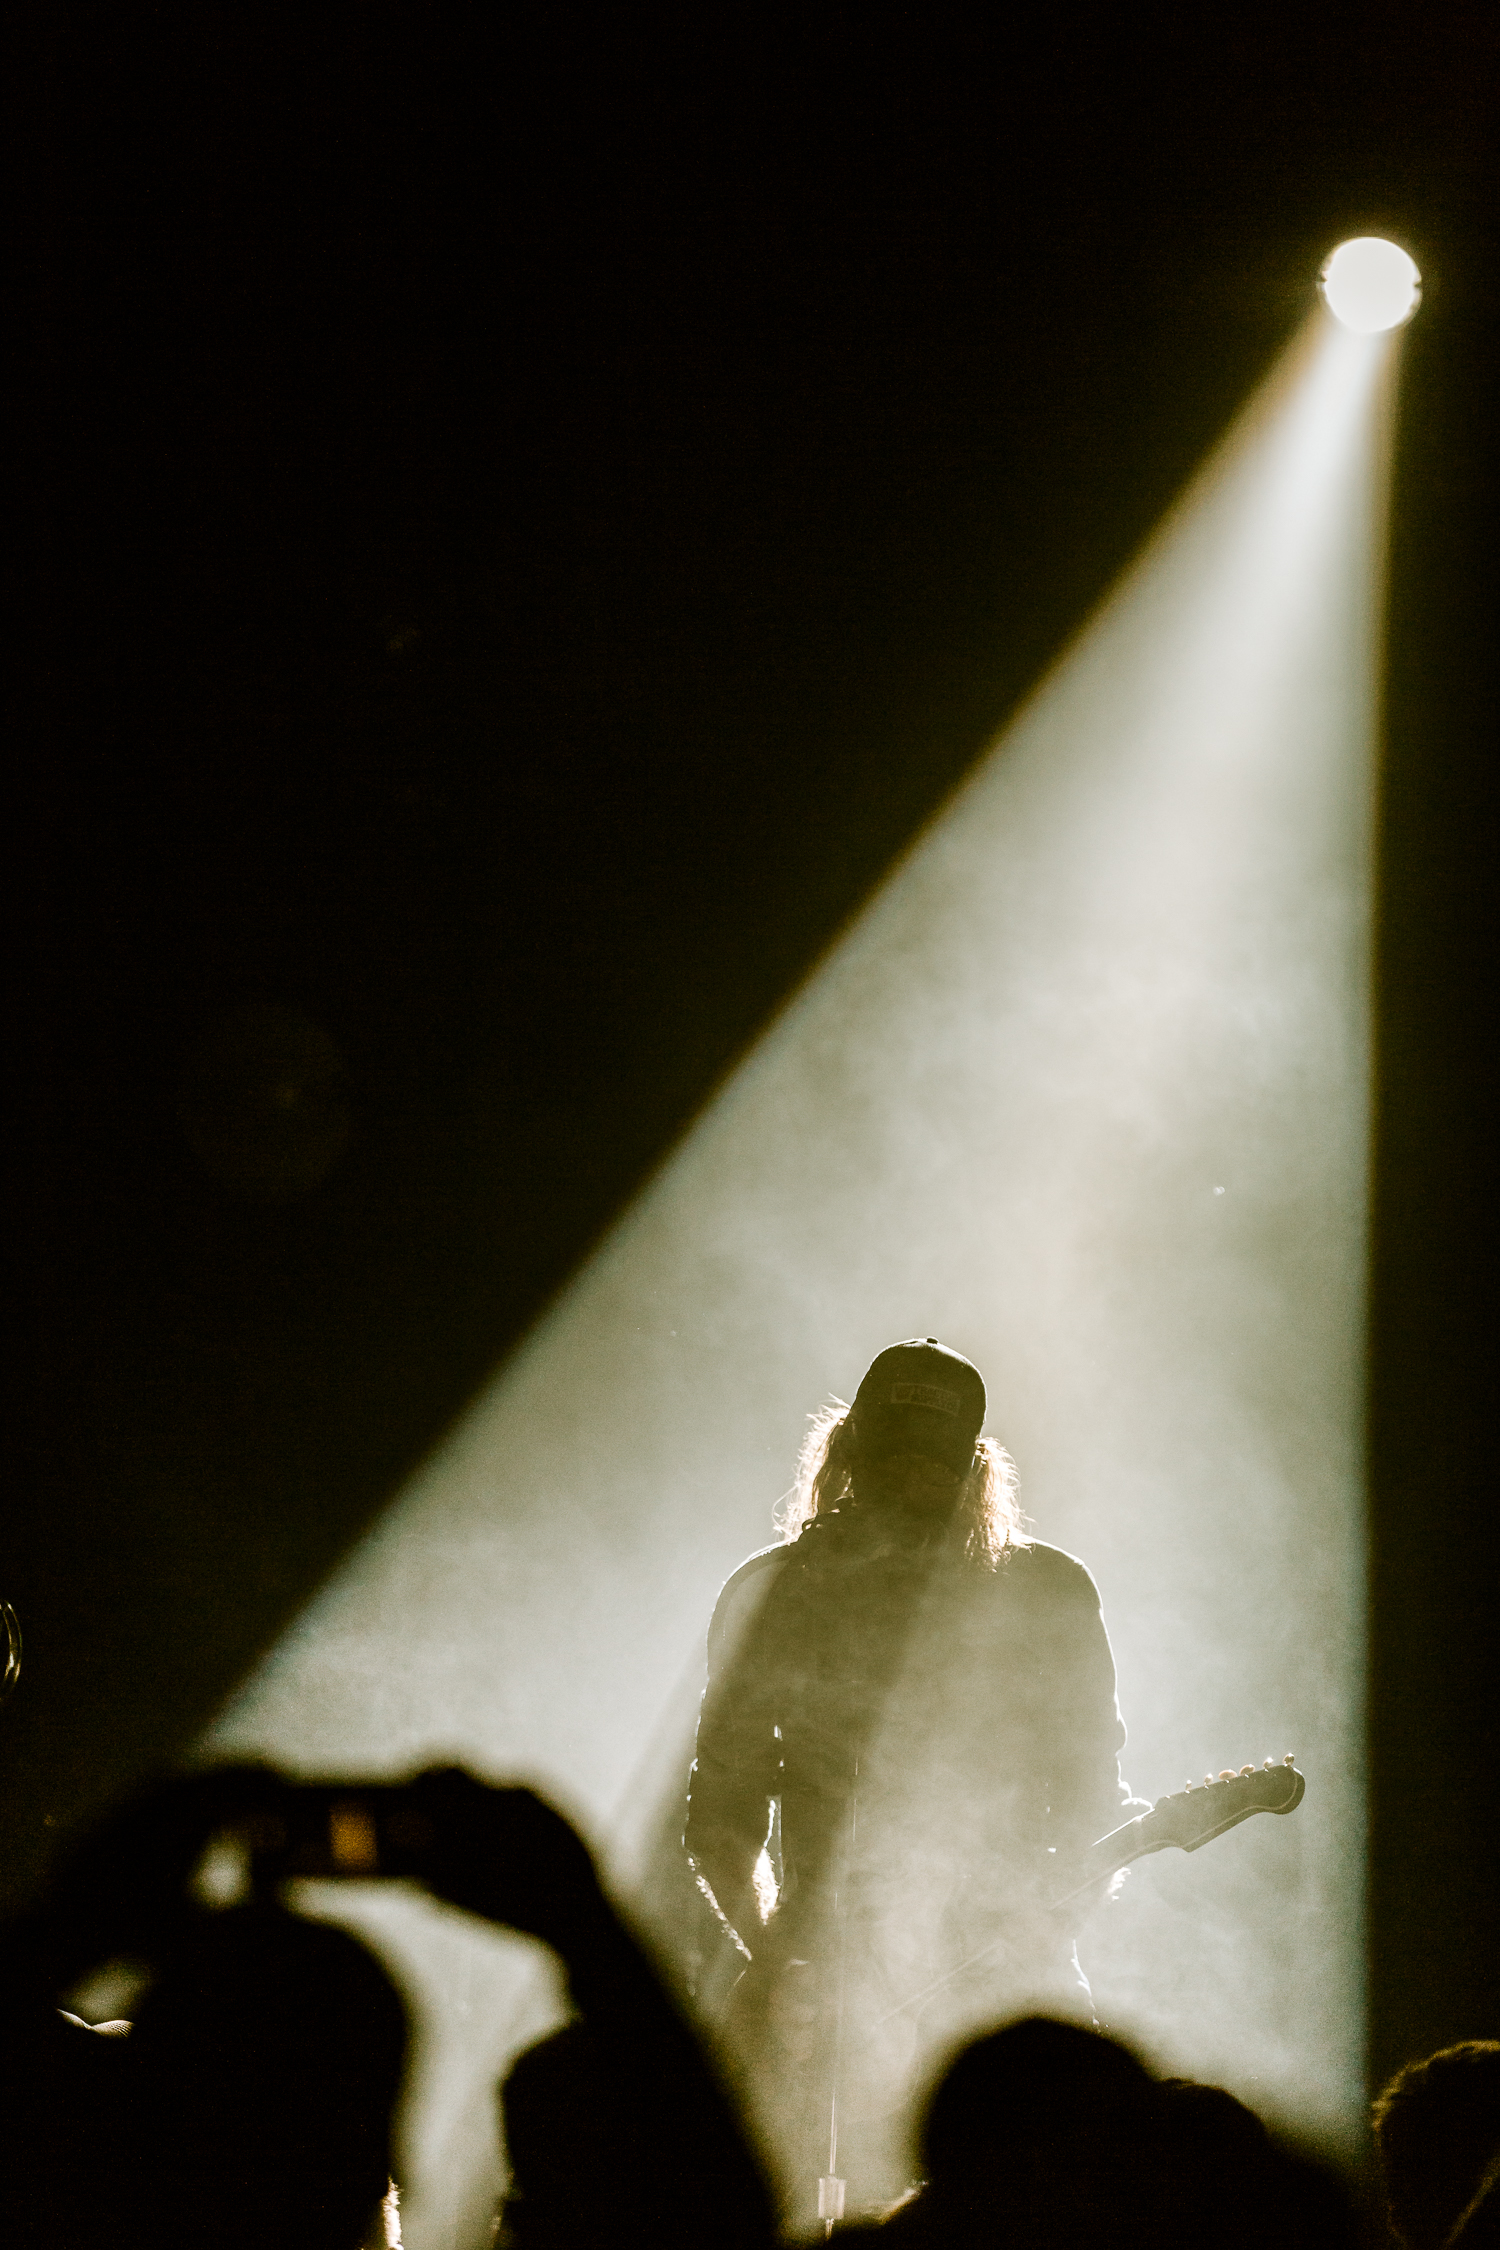 As a live music photographer you have to be ready for sudden changes. This shot came out of nowhere when the lighting changed suddenly. I dropped my exposure by a stop and a half by shortening my shutter speed because I didn't want any background details surrounding Crowder and create this silhouette feel.